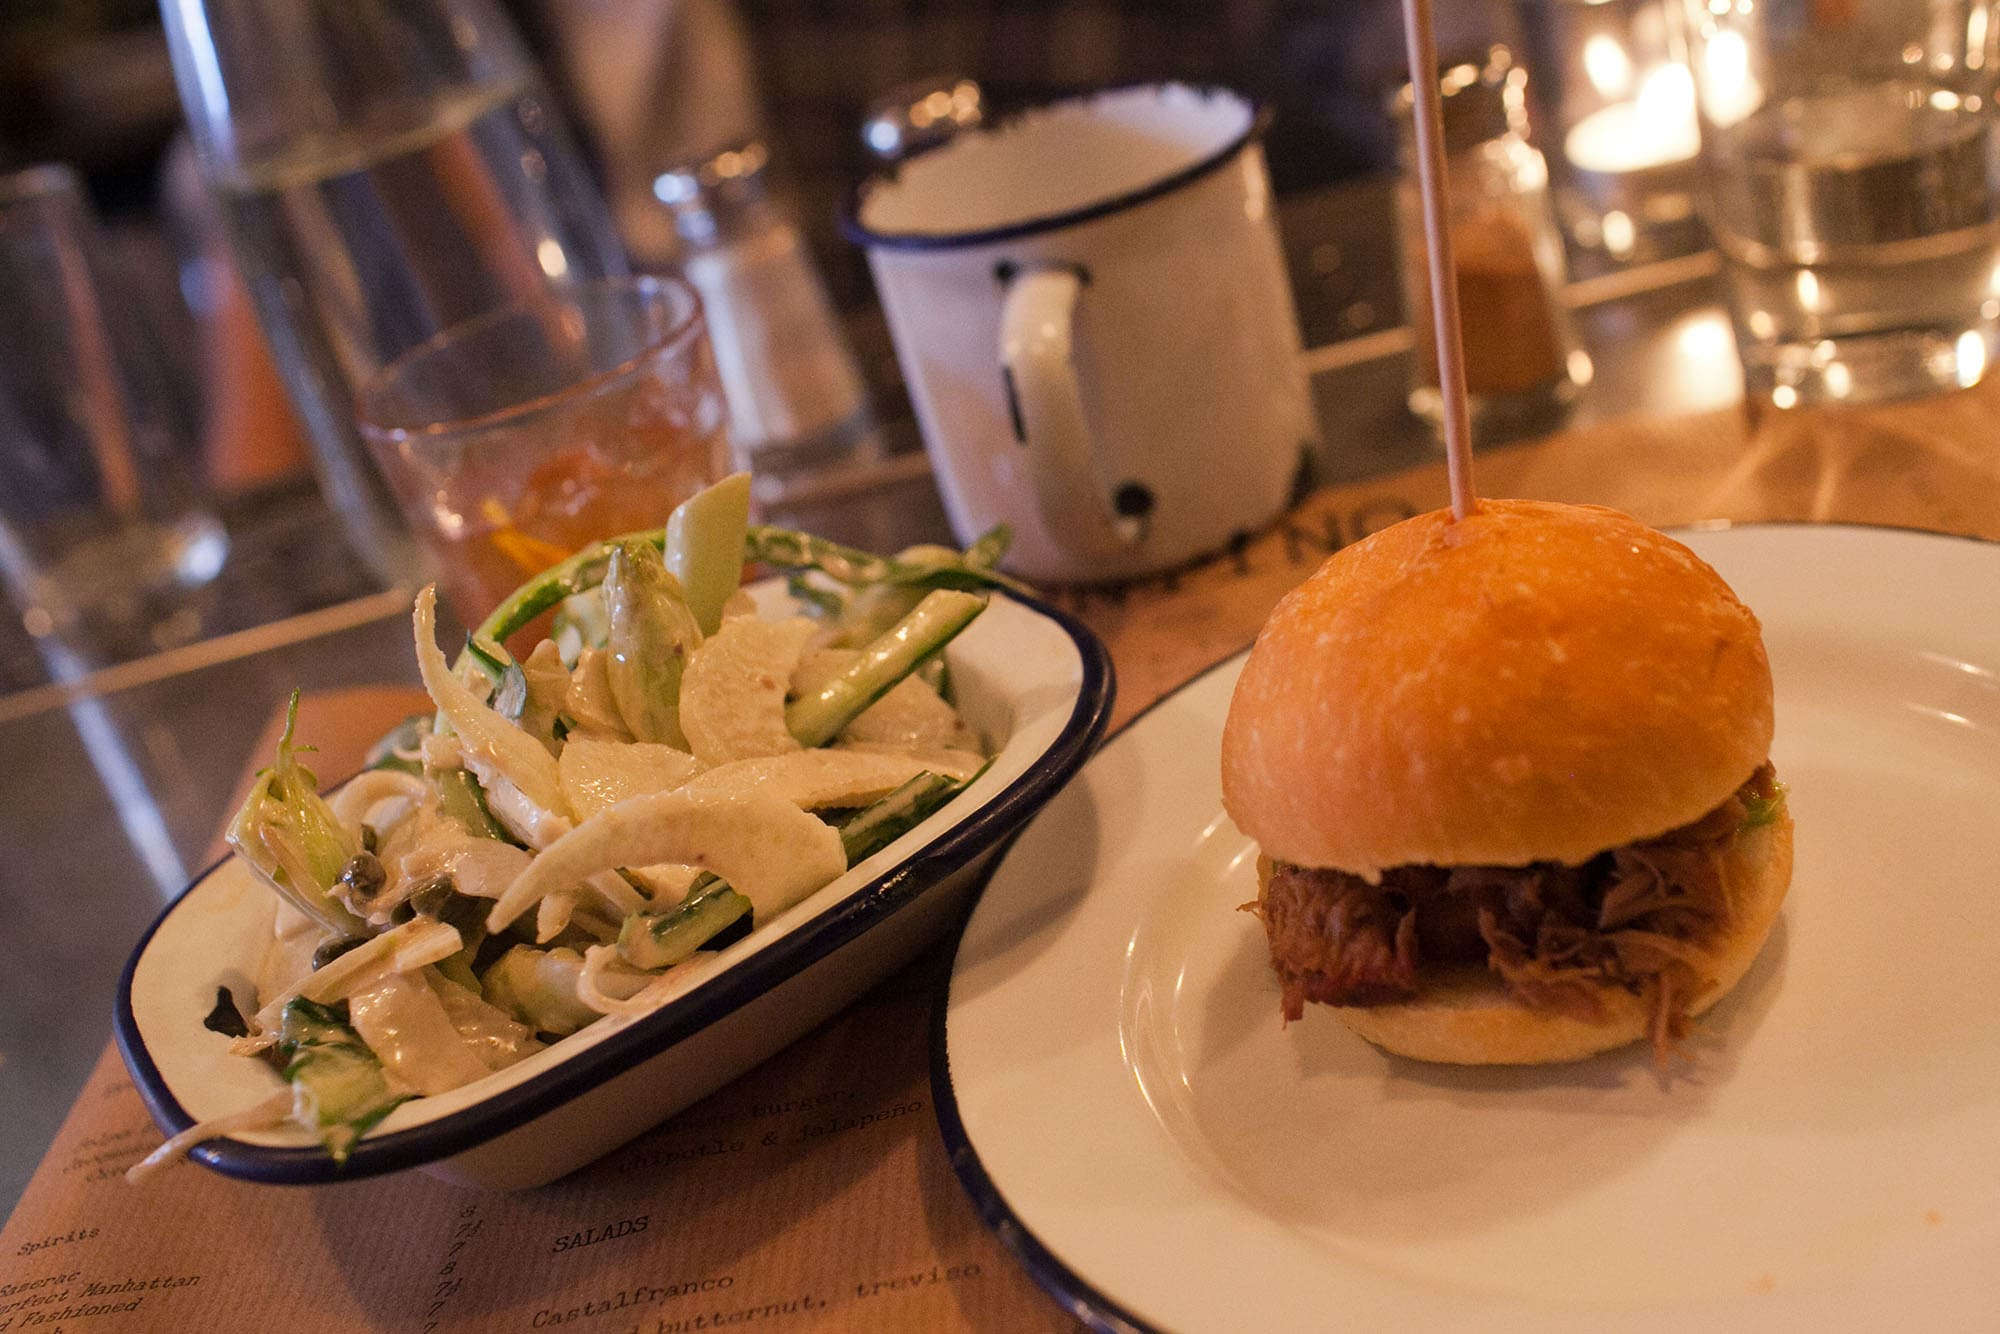 Pork slider and Celeriac Salad from Sputino in Soho, London, England